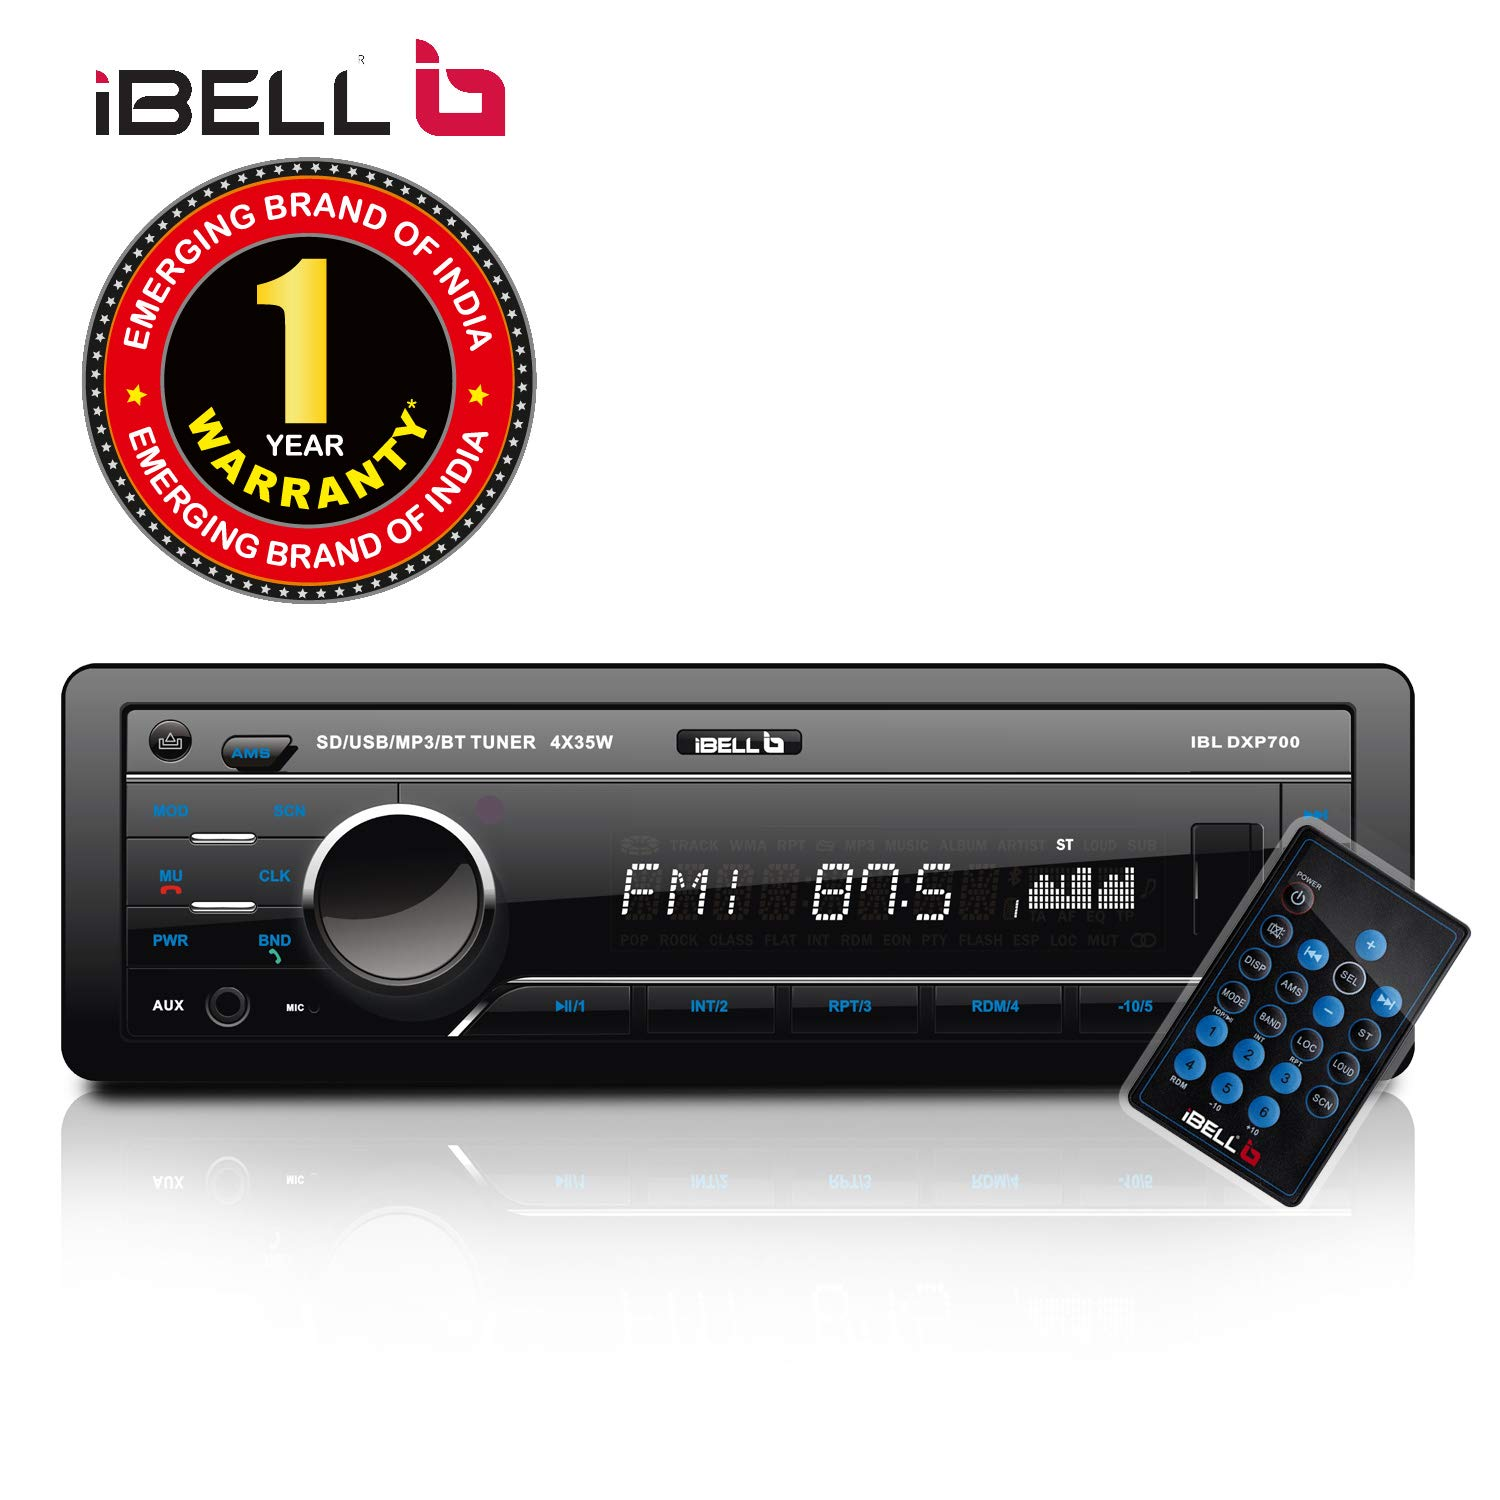 Car Audio System >> Ibell 140w Car Stereo Media Mp3 Music System Bluetooth One Touch To Receive Call With Fm Aux Usb Mmc